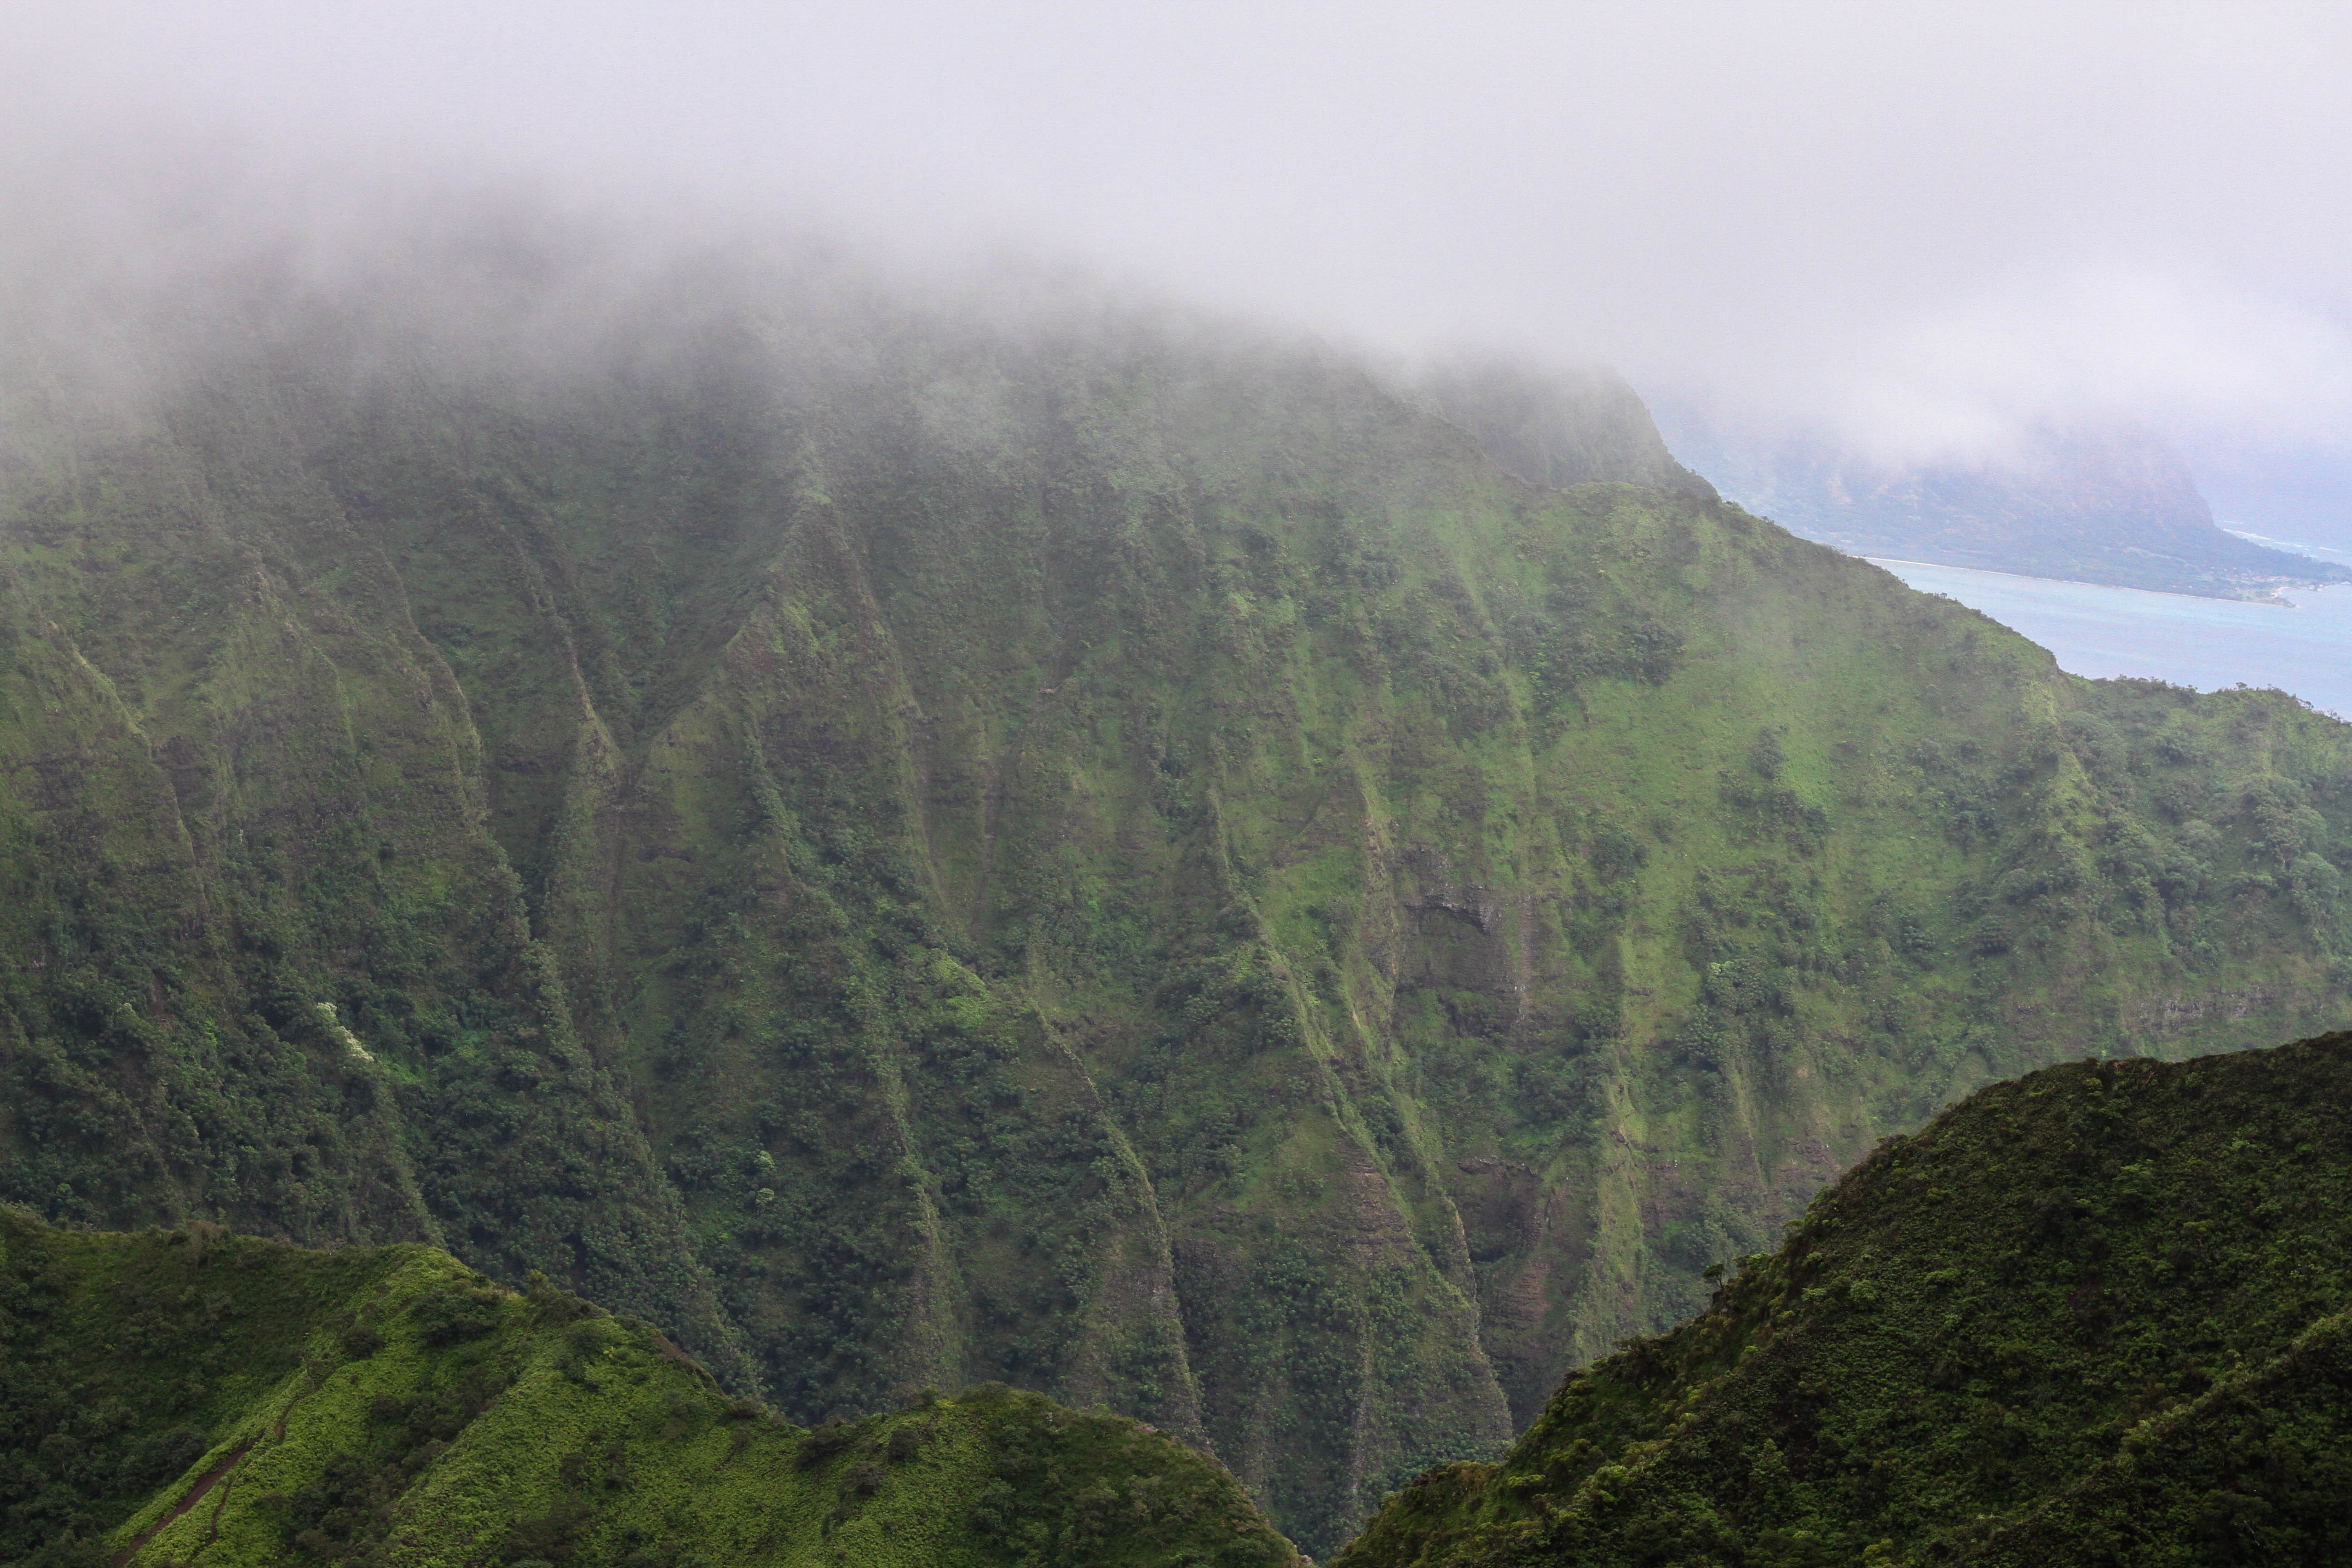 Fog over top a forest in Hawaii.